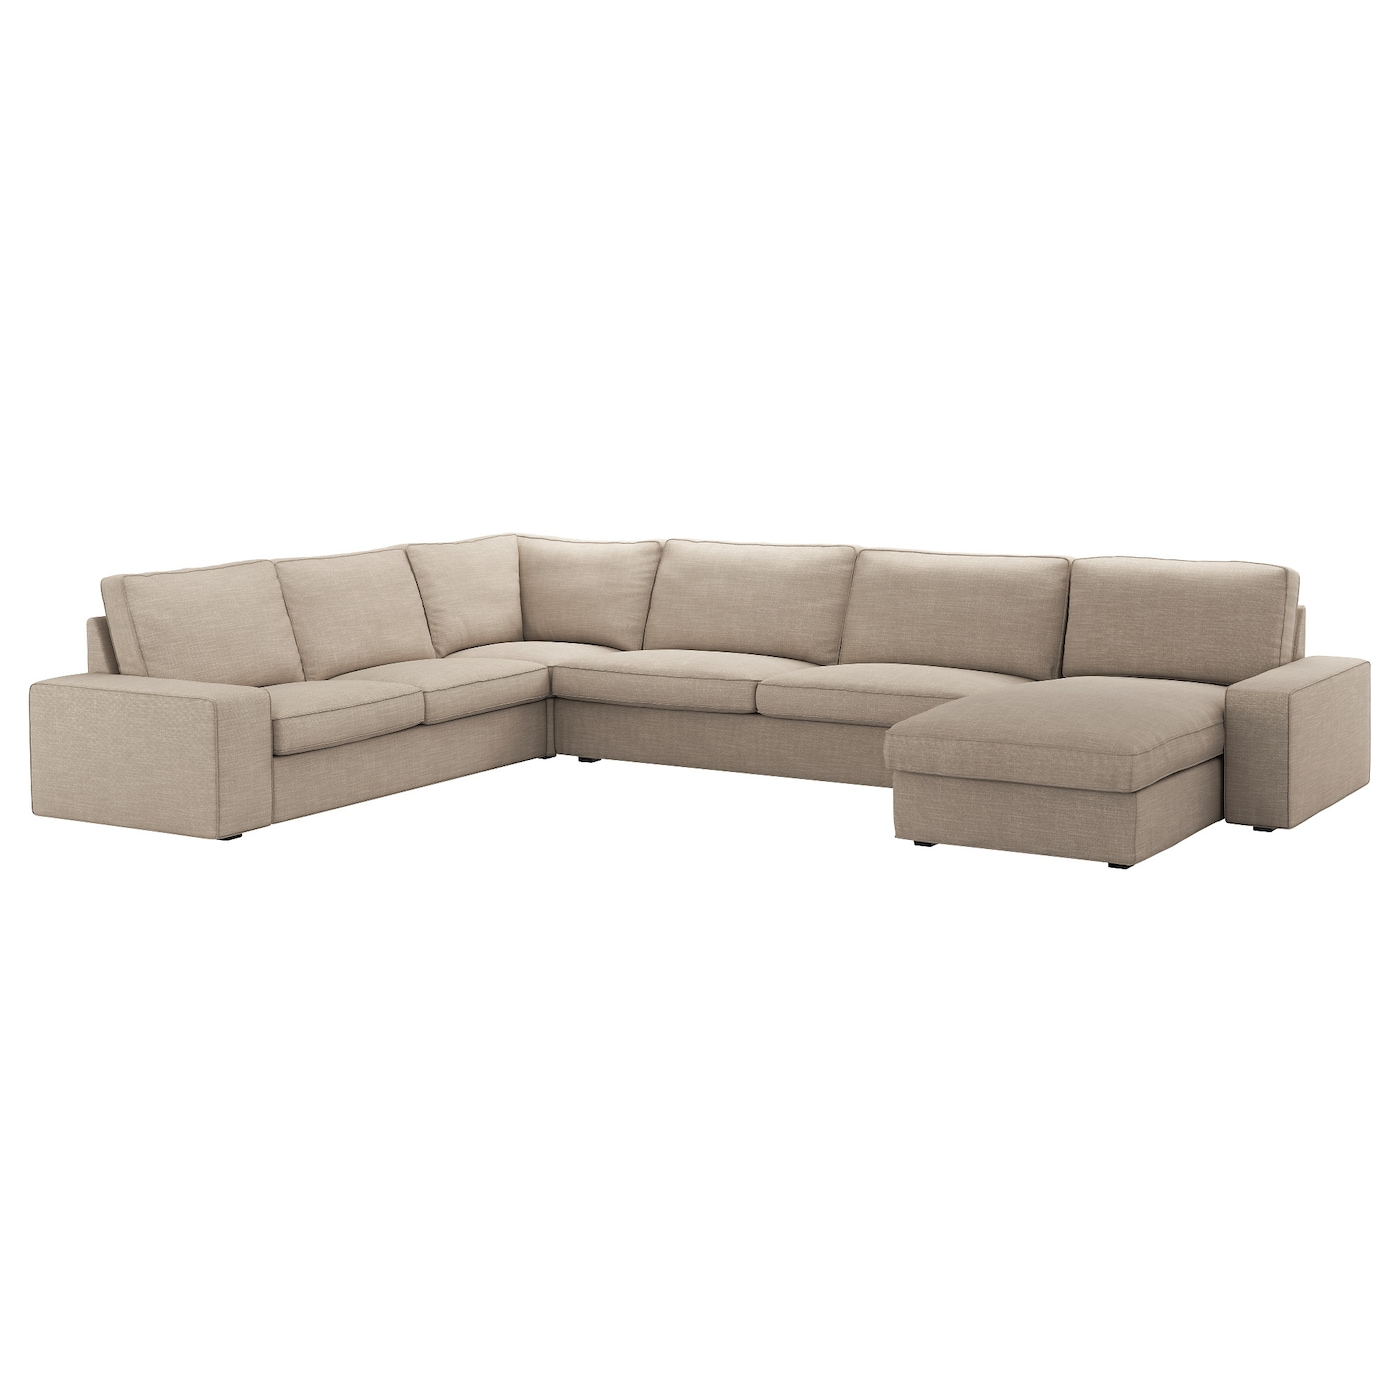 Kivik Corner Sofa 6 Seat With Chaise Longue Hillared Beige Ikea